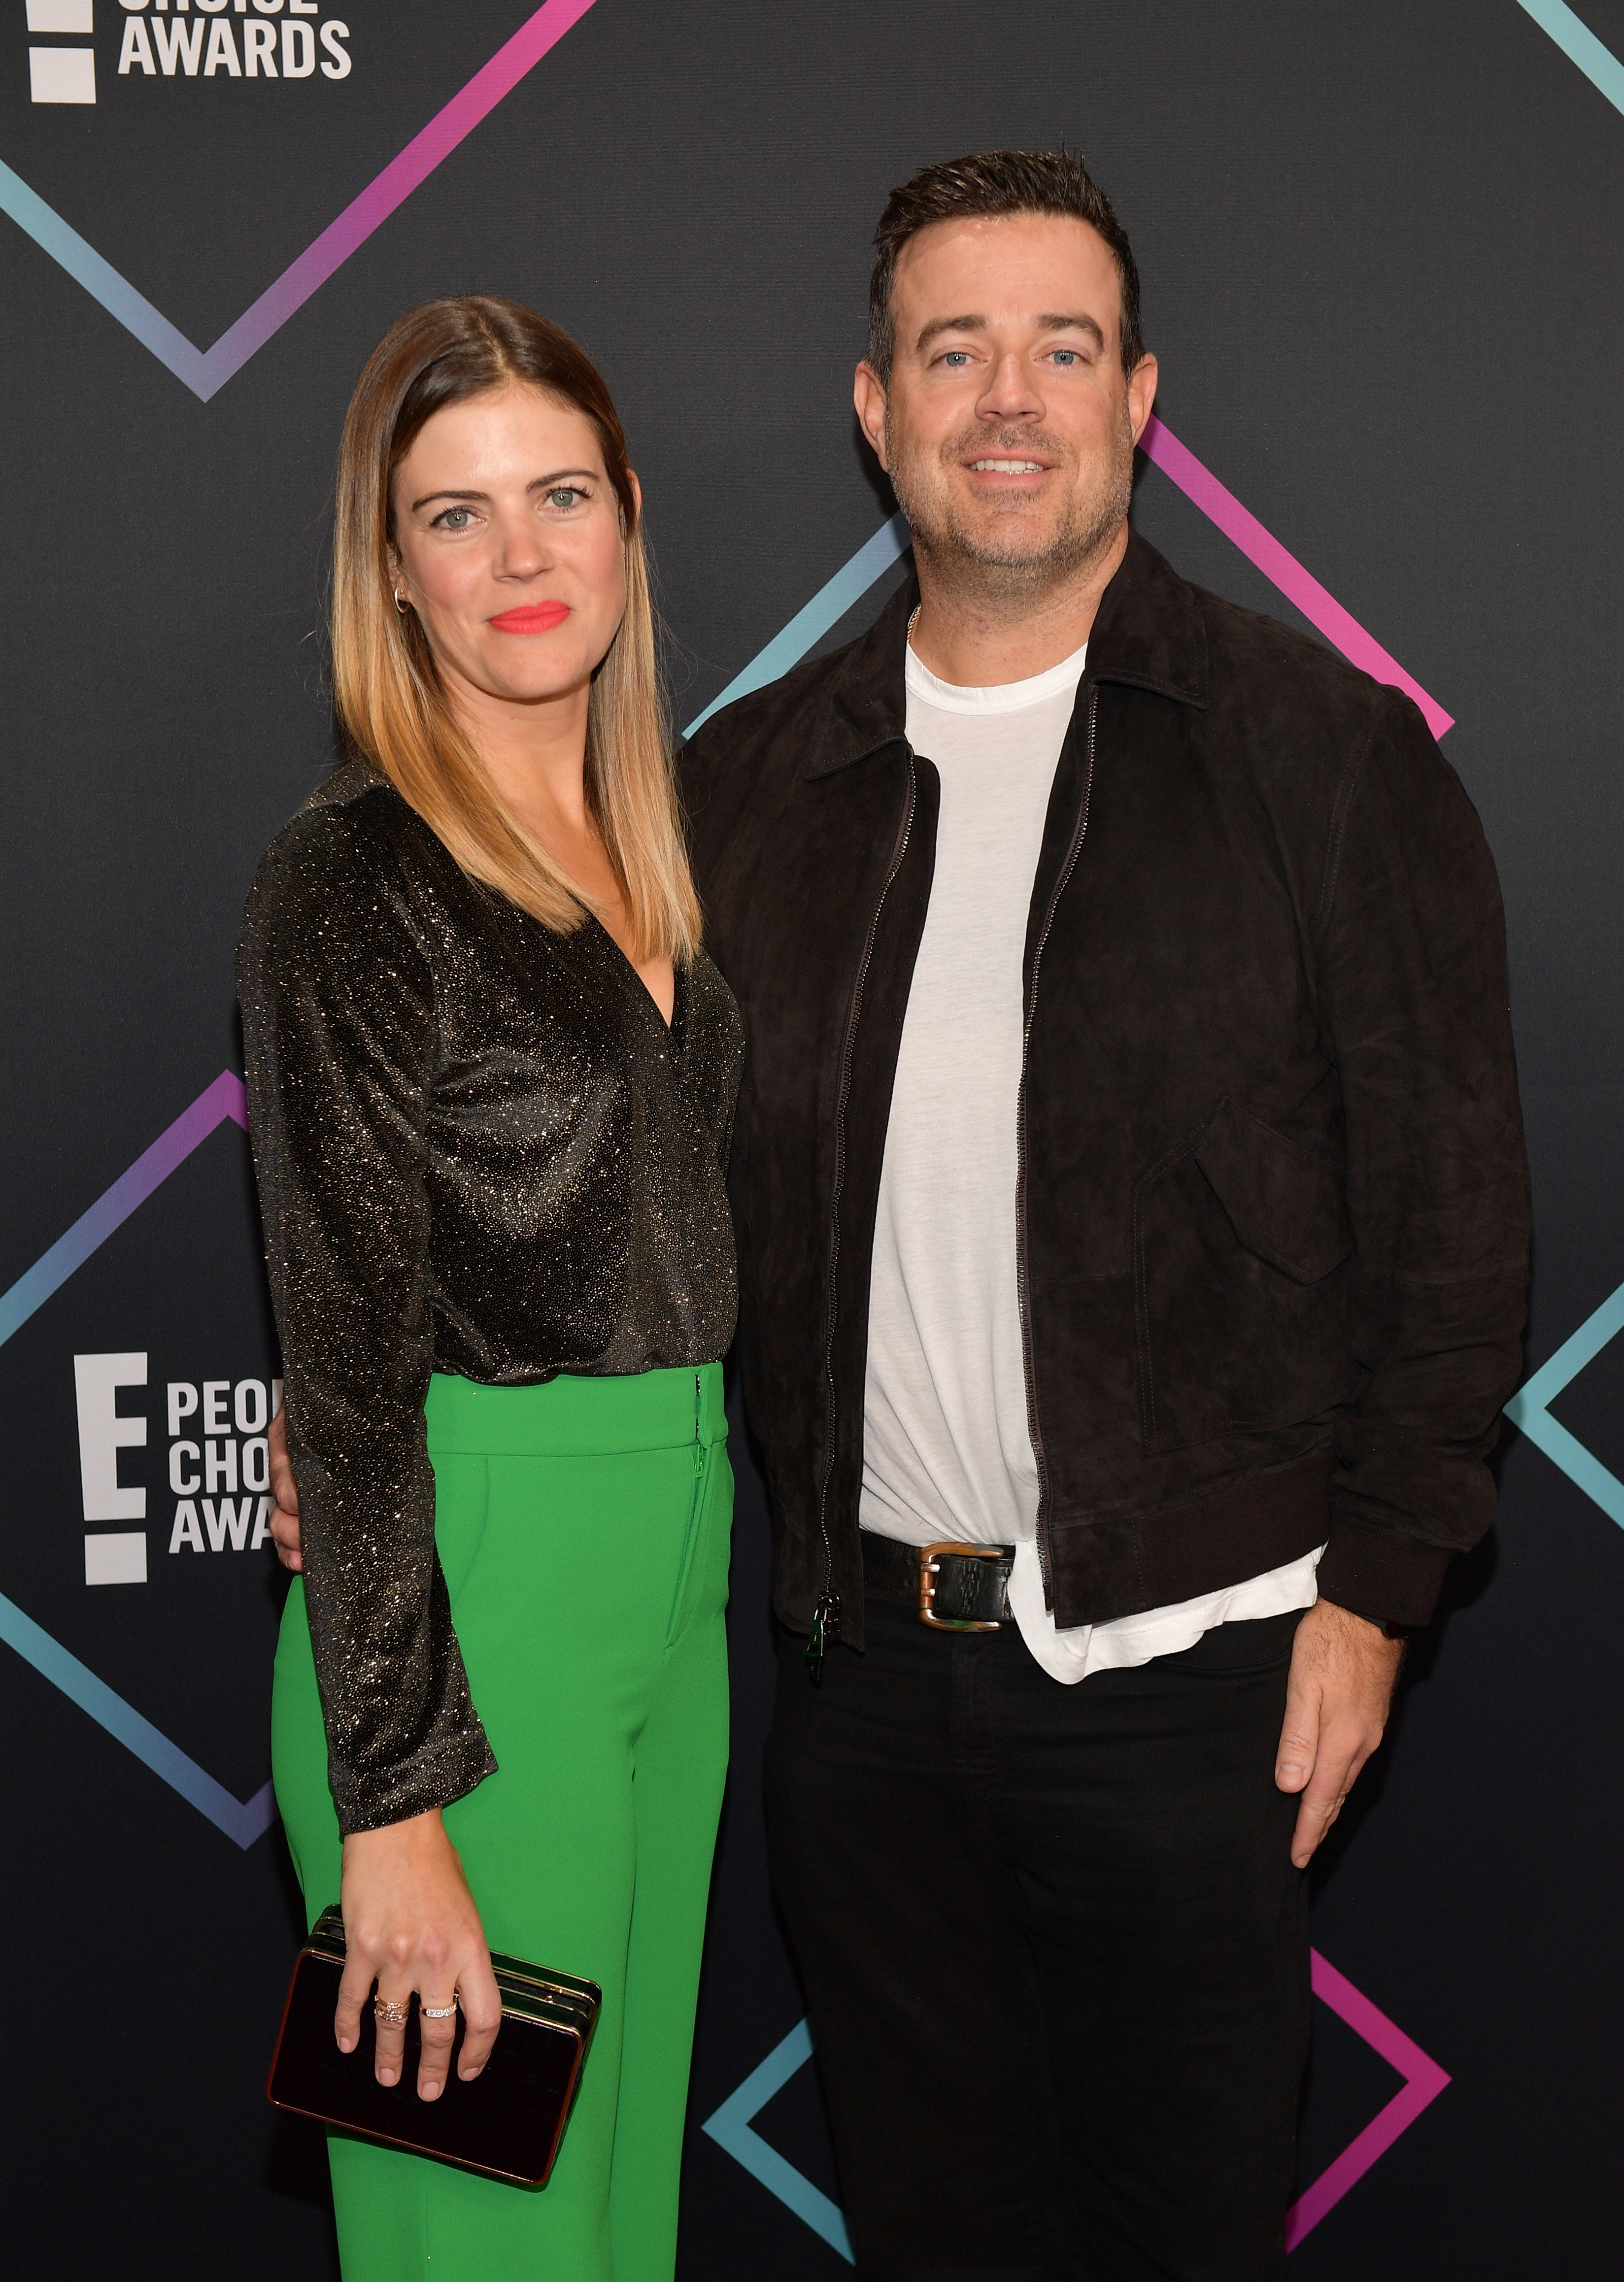 Carson Daly On His Early Days On The Voice It All Started With